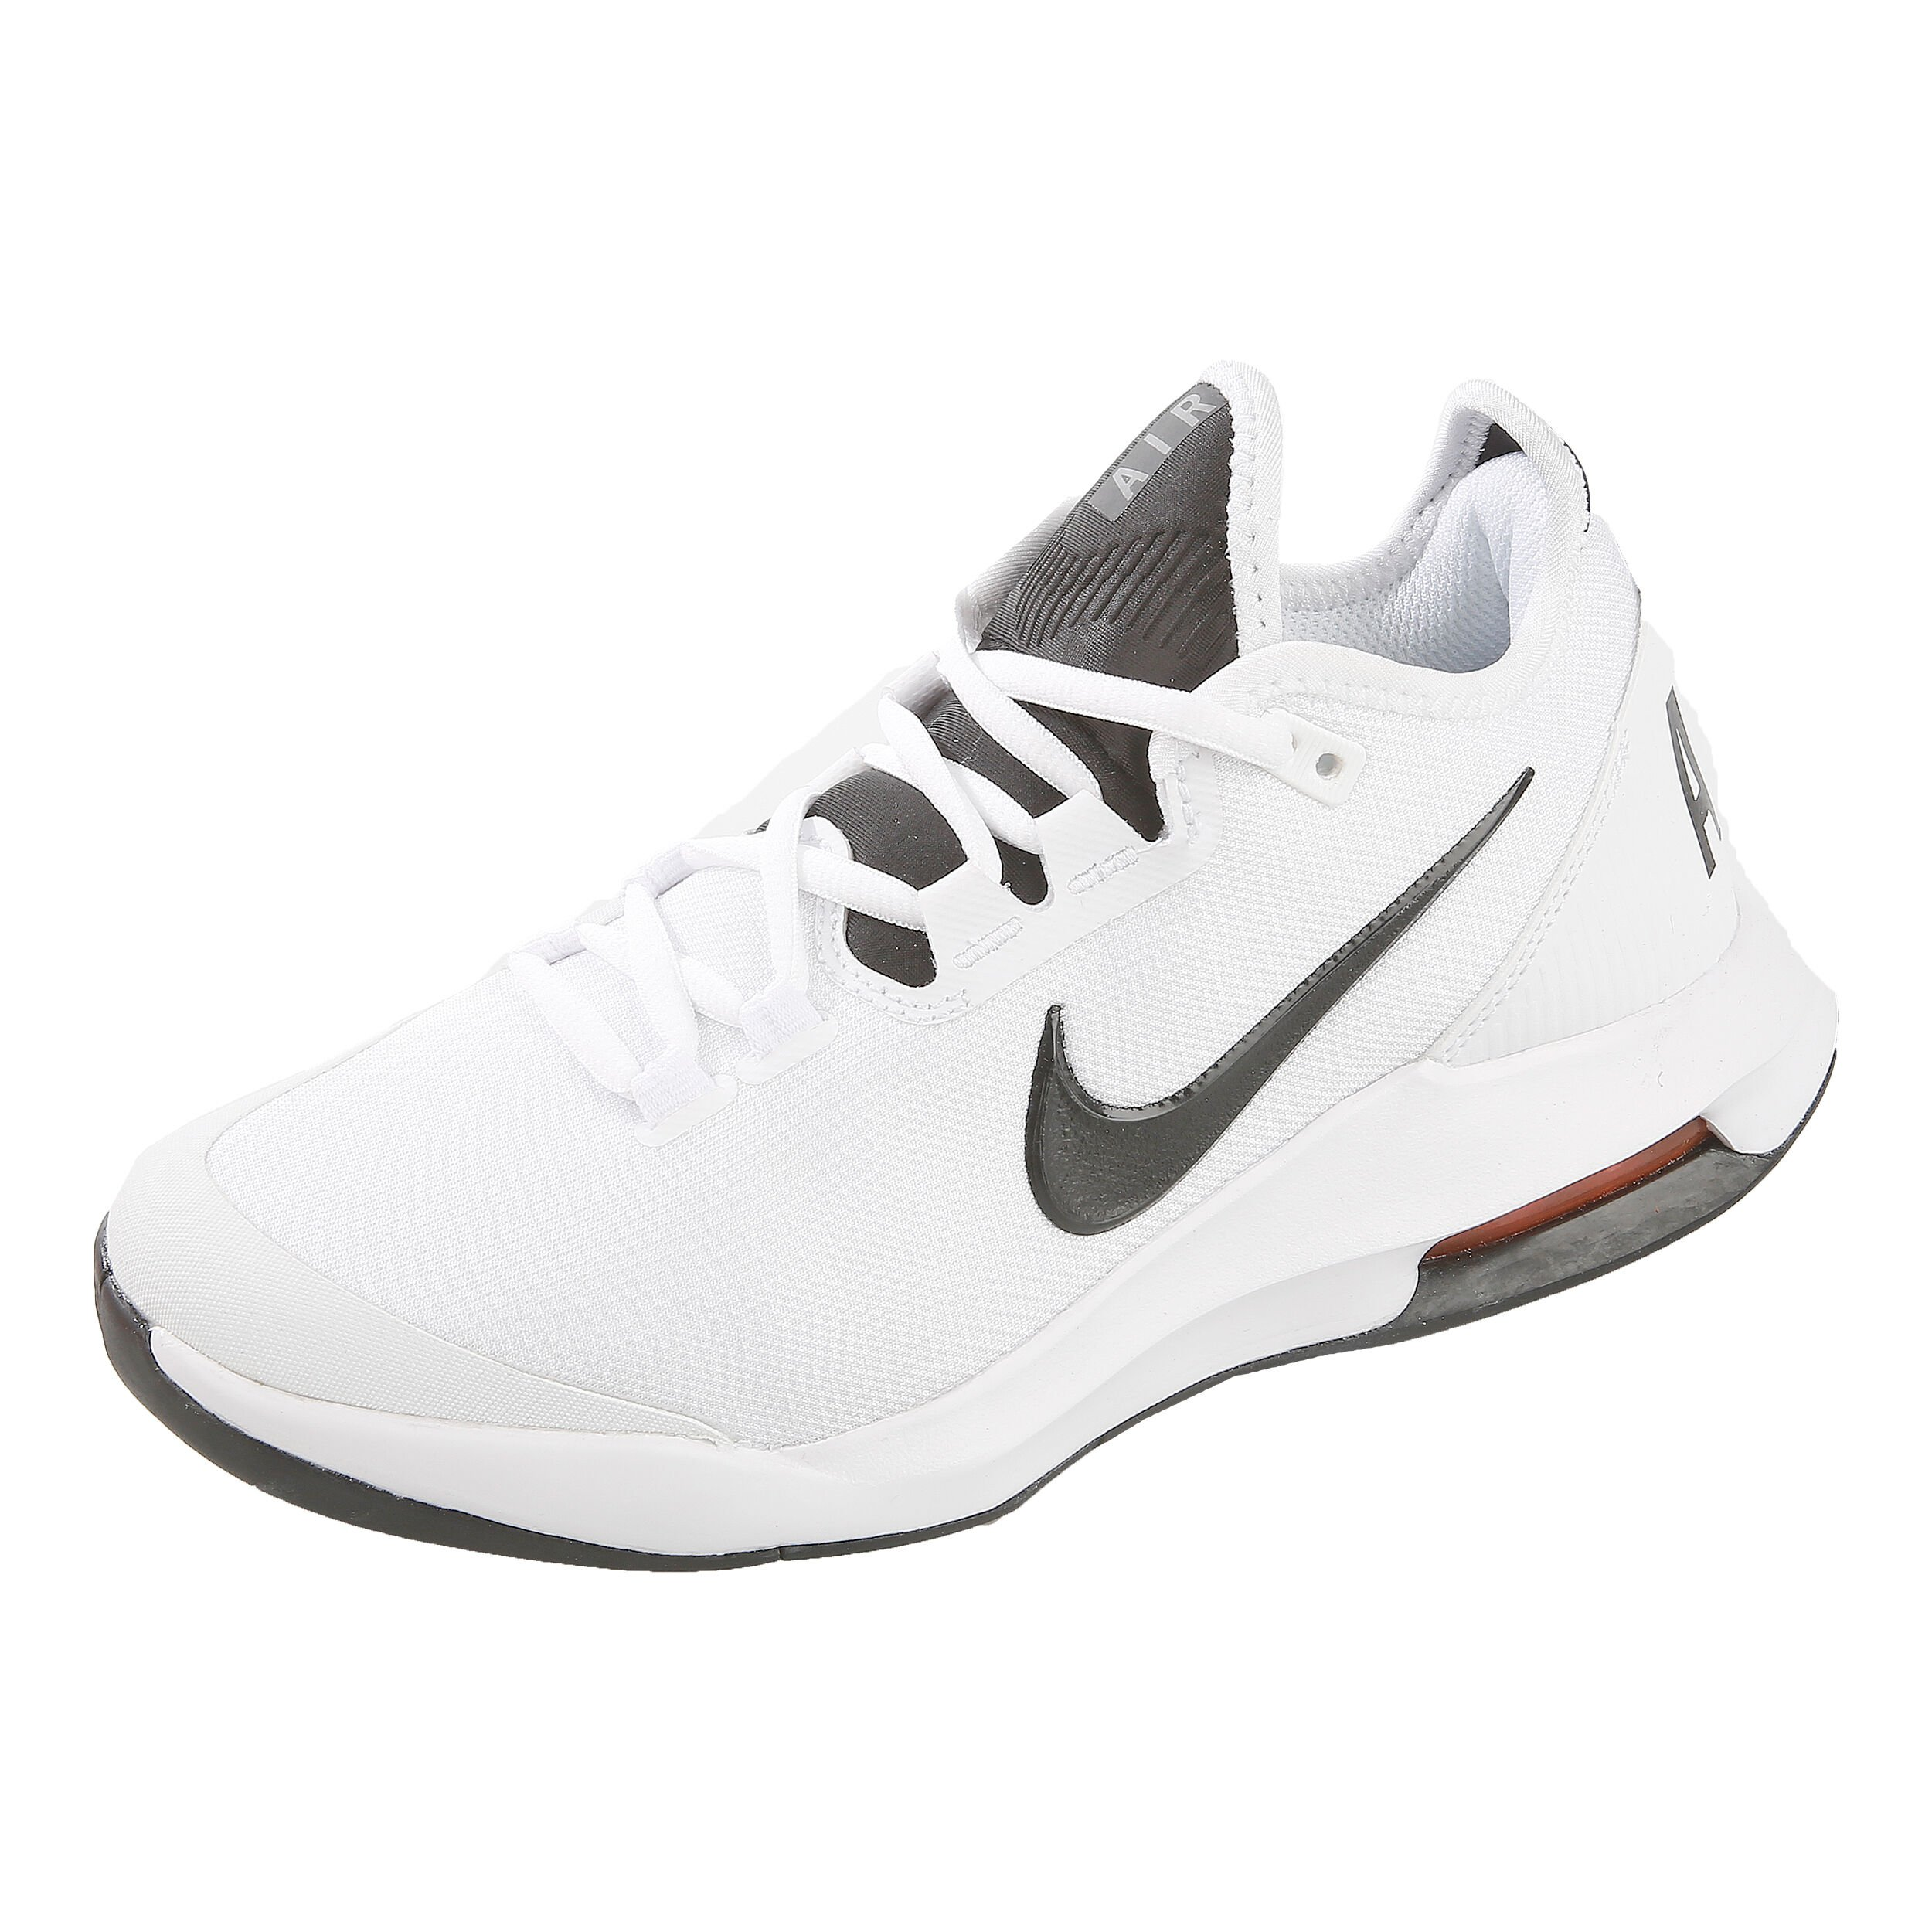 Max Chaussures Femme Surfaces Blanches Nike Air Toutes